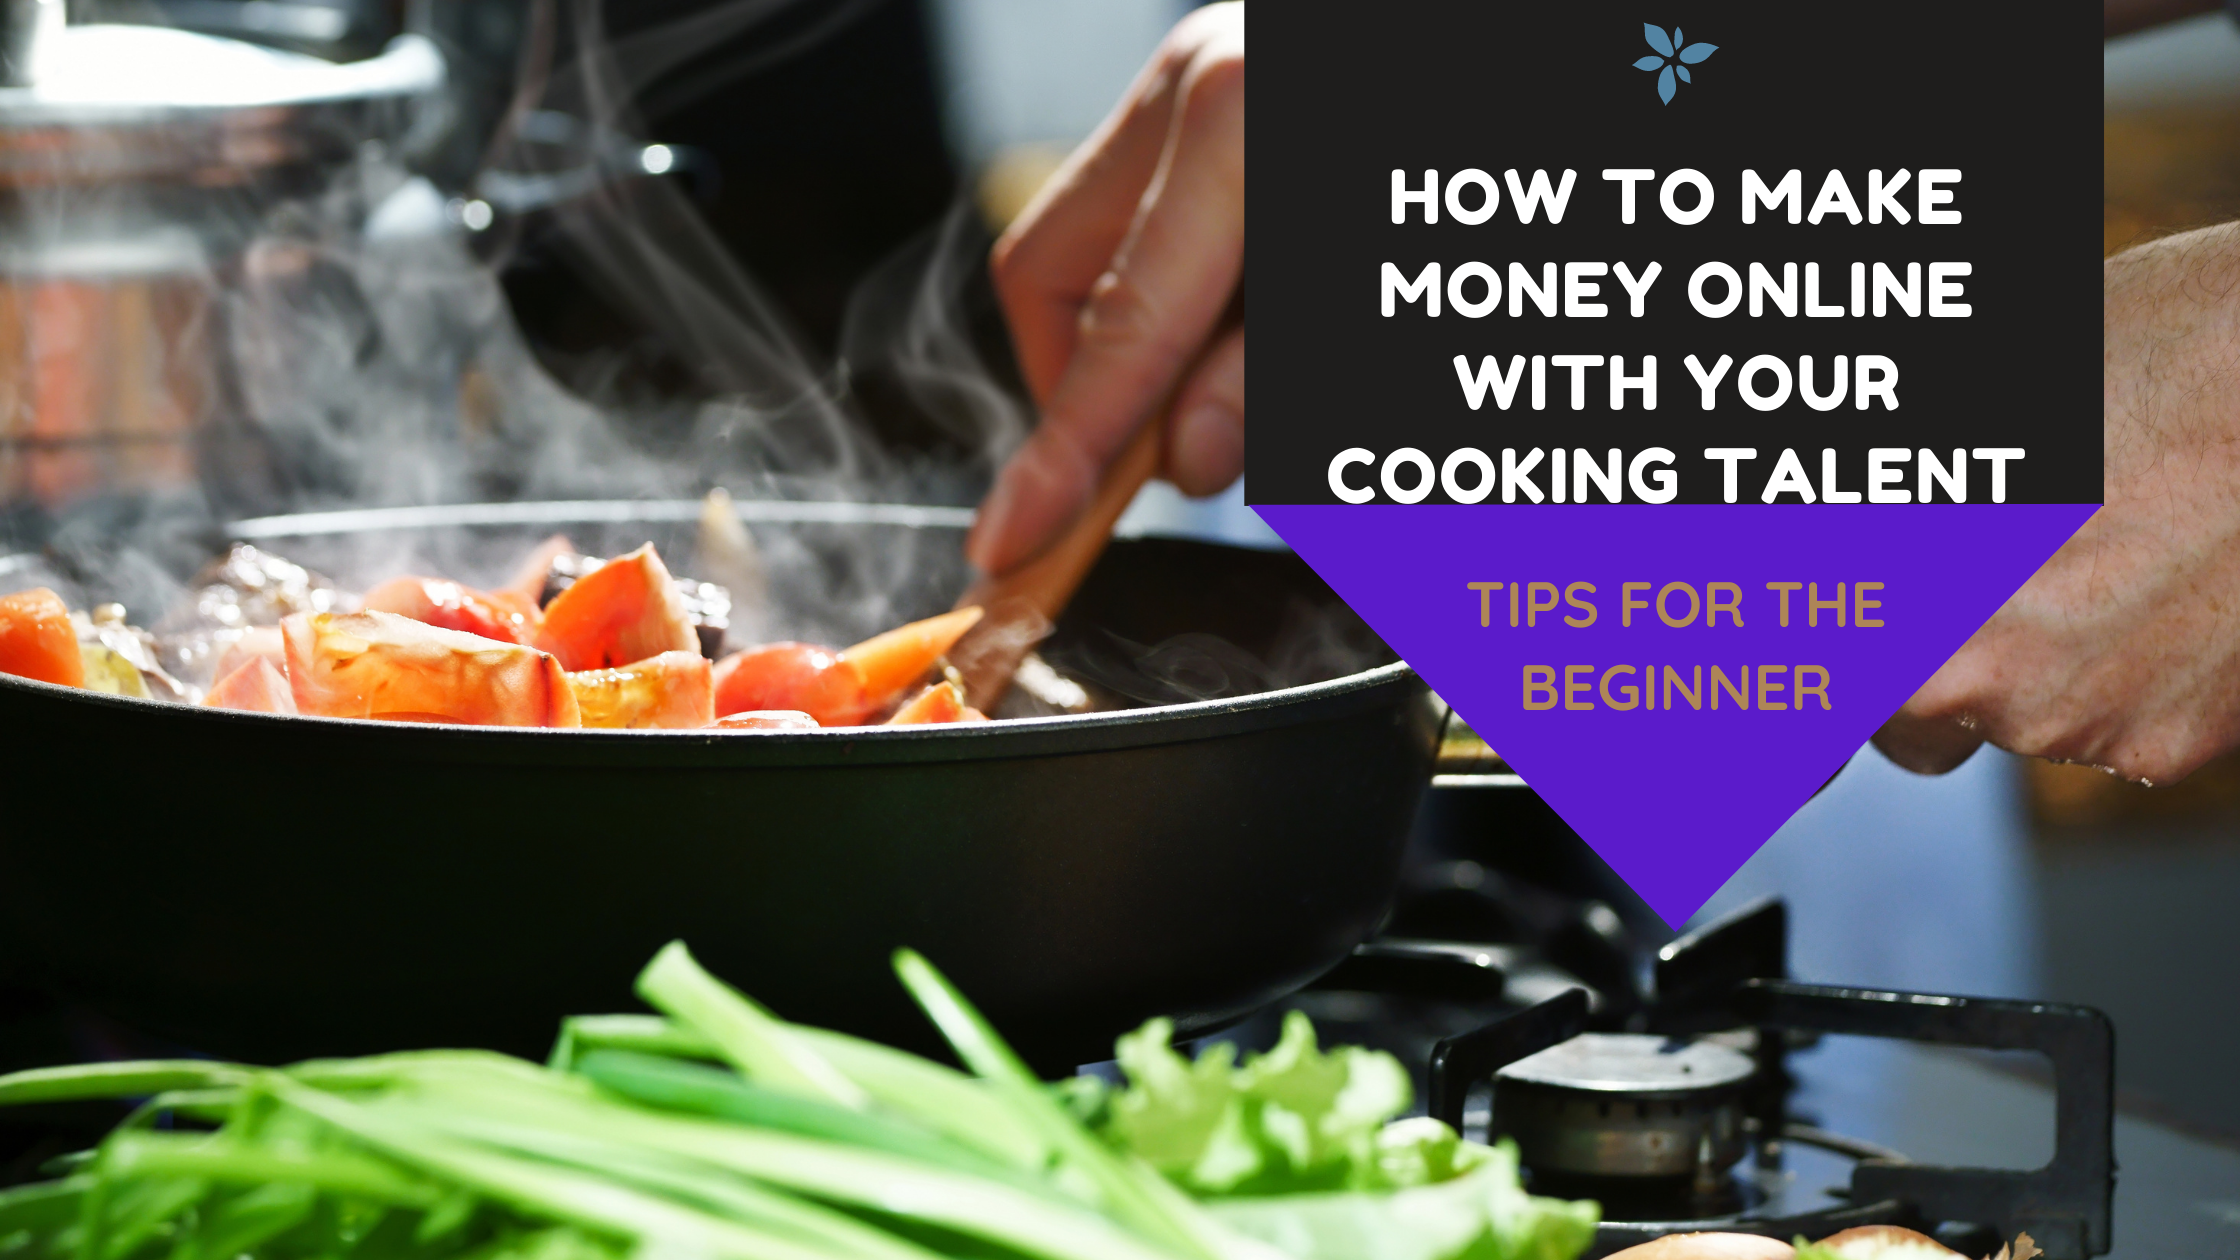 HOW TO MAKE MONEY ONLINE WITH YOUR COOKING TALENT.